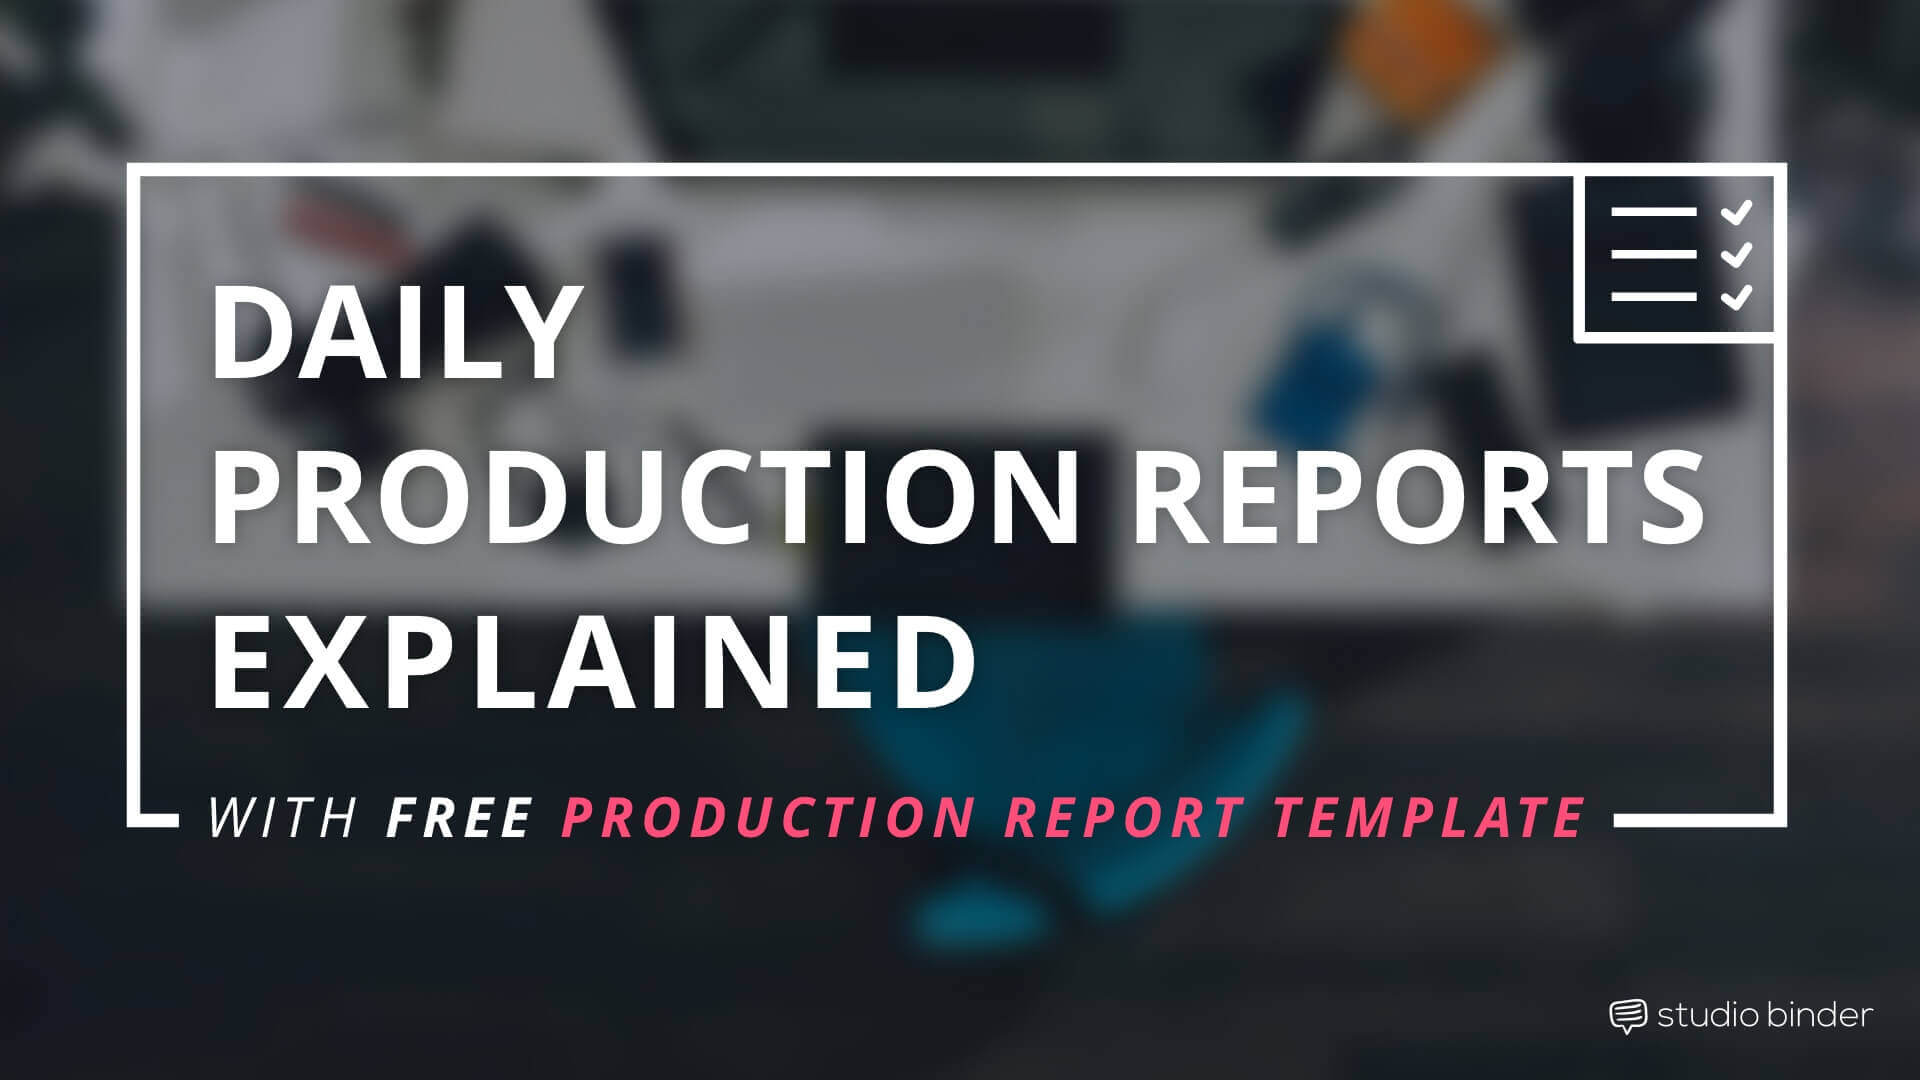 The Daily Production Report Explained with FREE Daily Production Report Template - StudioBinder - Featured